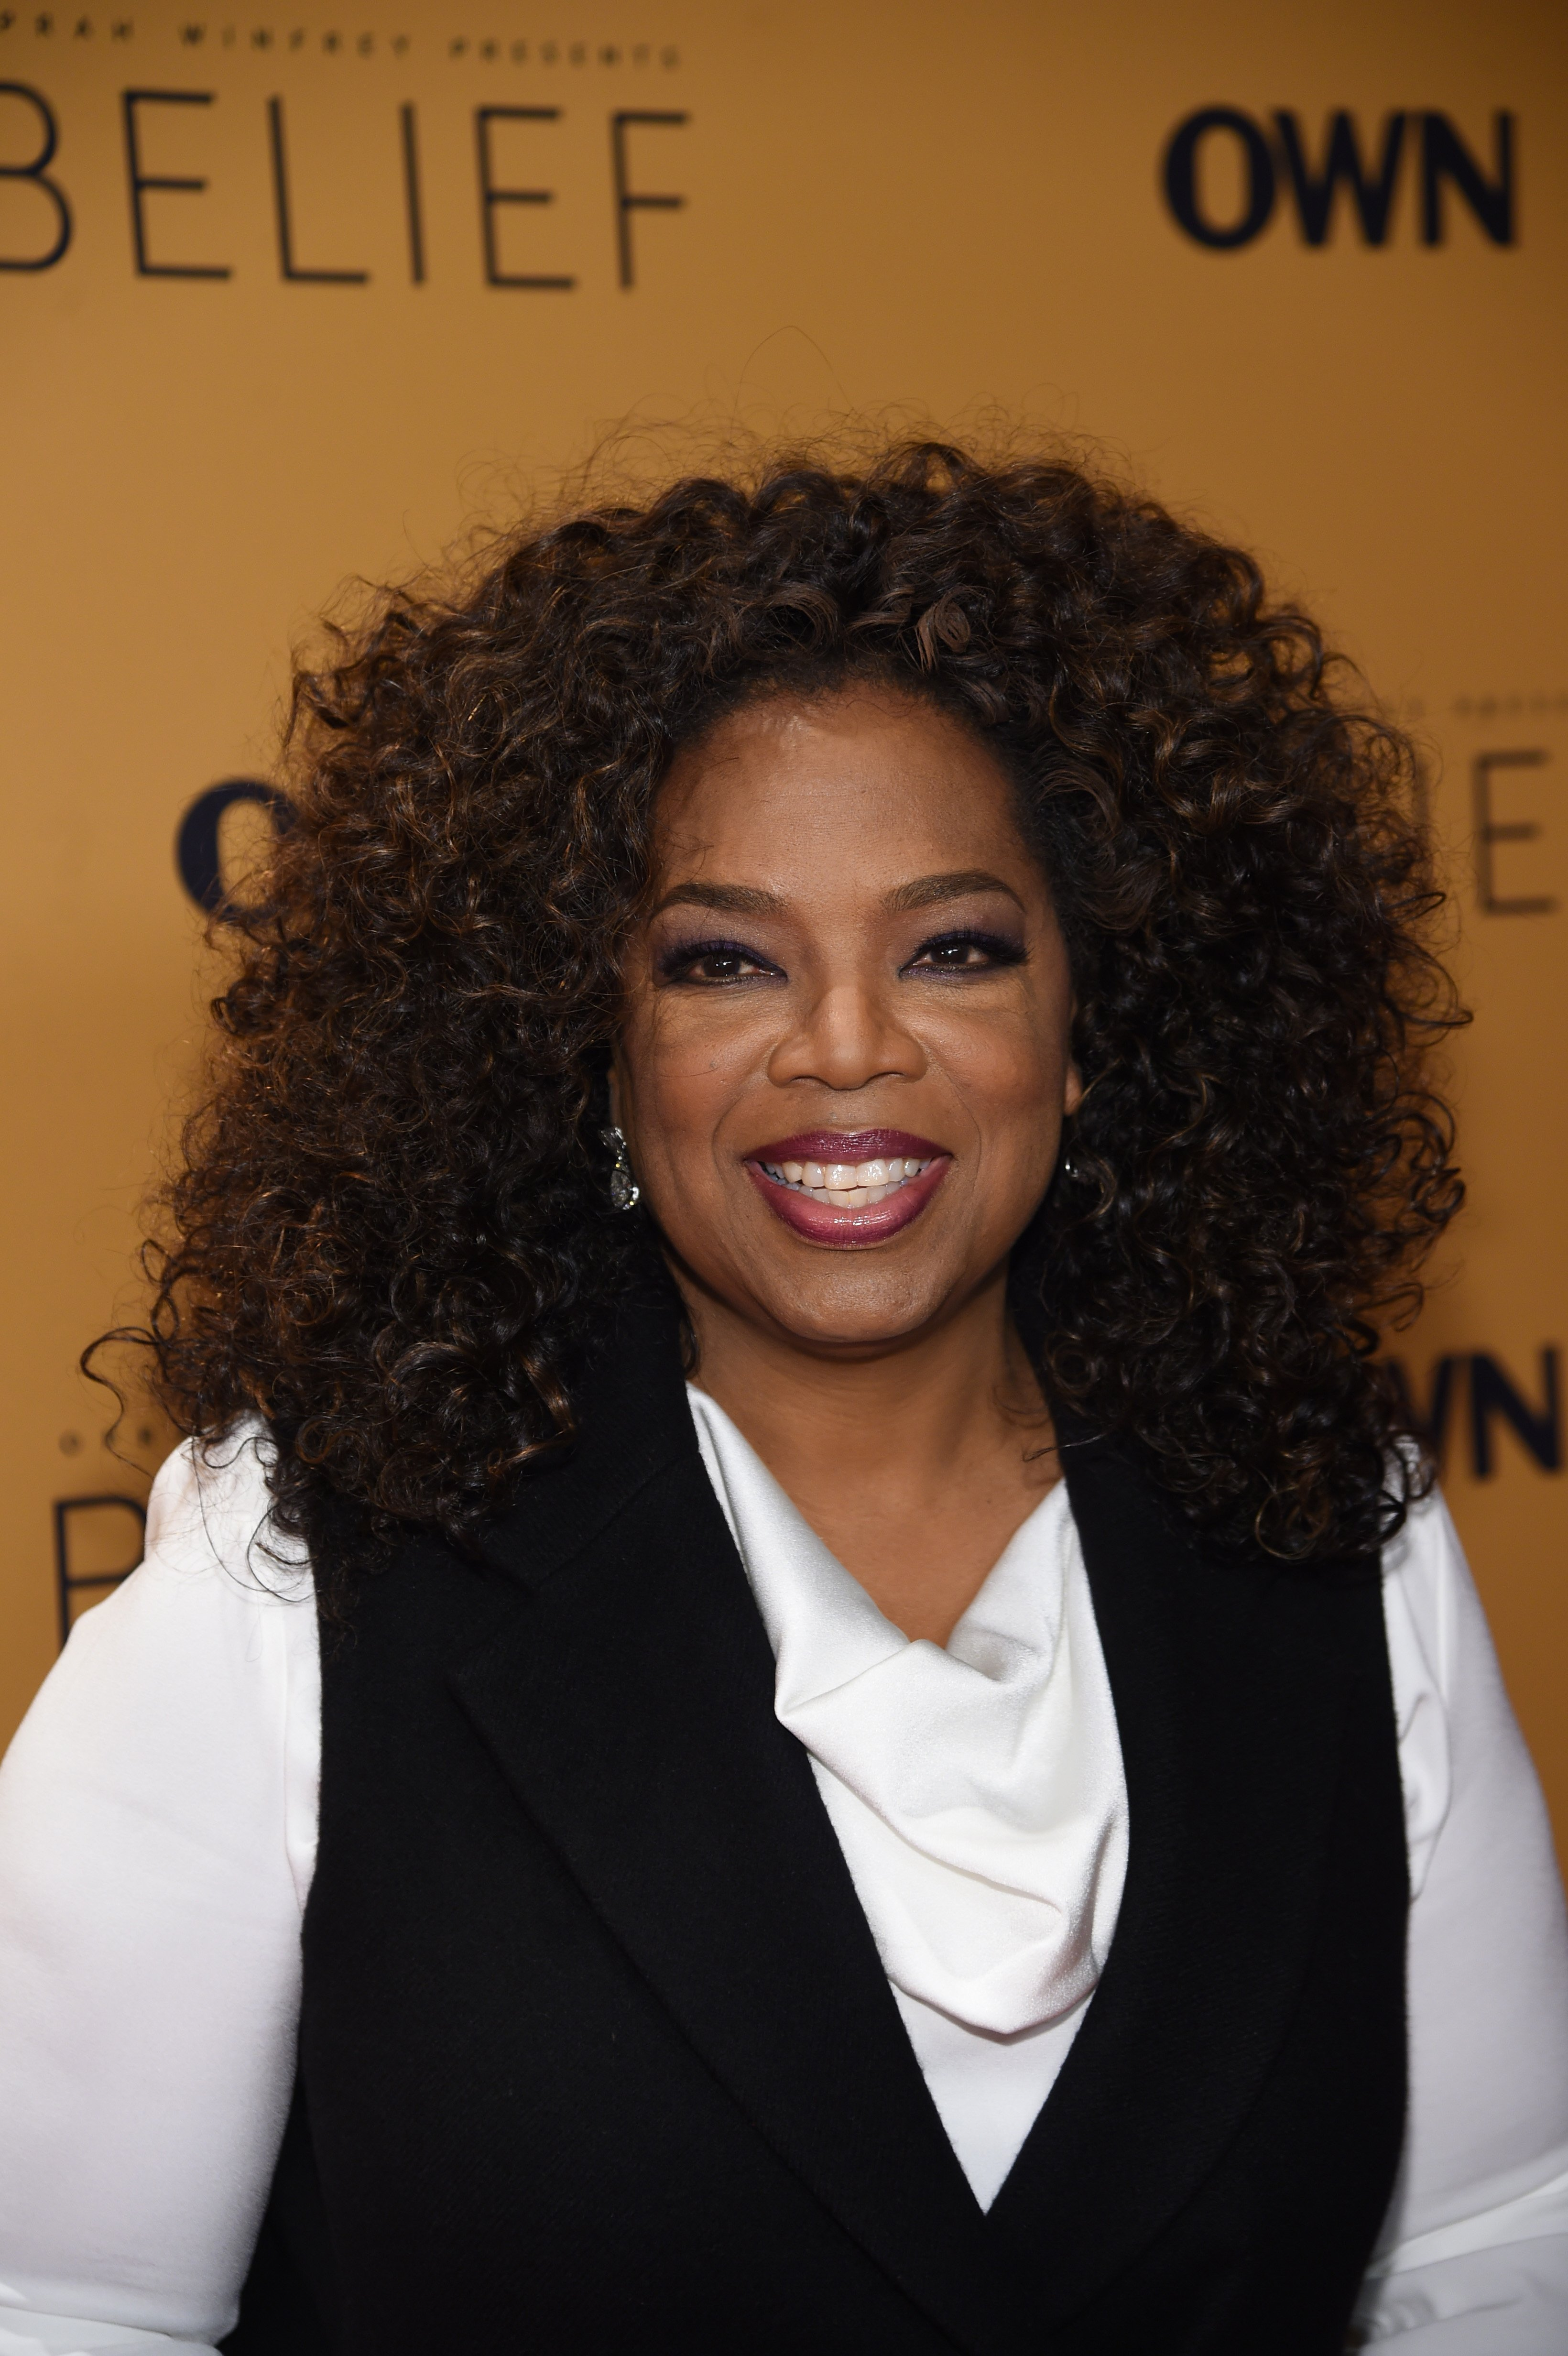 """Oprah Winfrey at the New York premiere of """"Belief"""" in October 2015. 